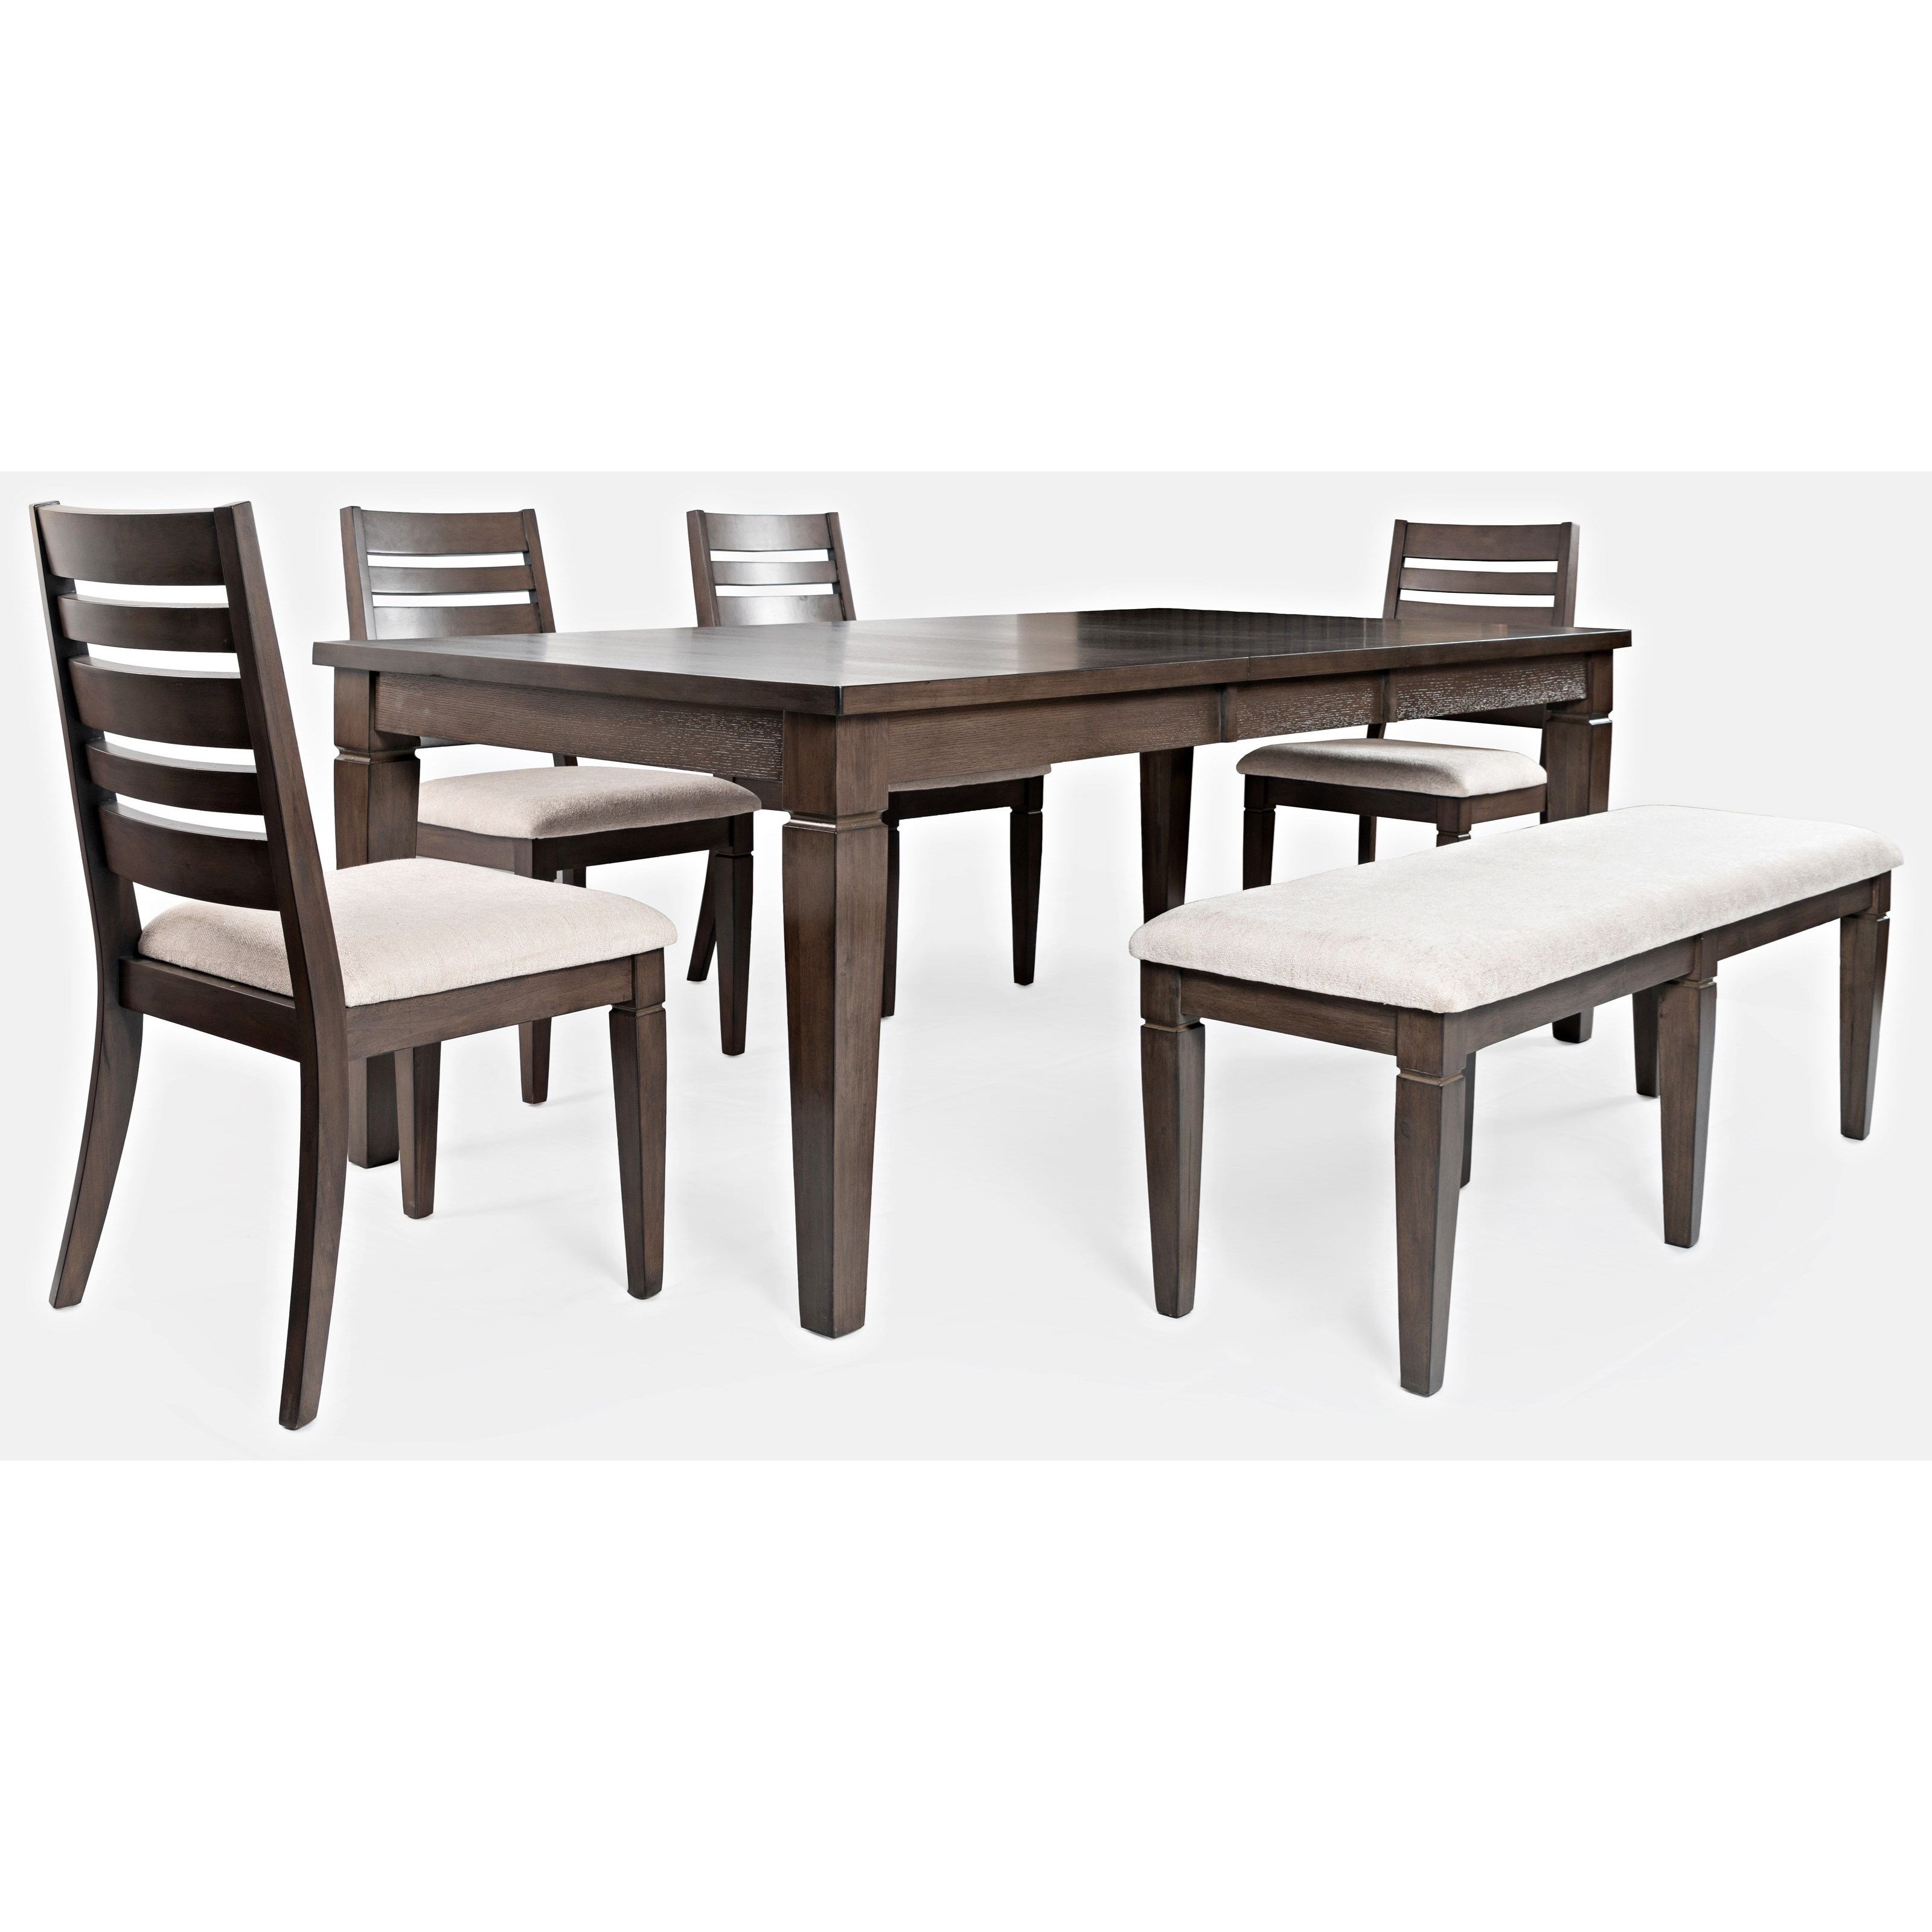 Park View 6PC Table & Chair Set w/ Bench at Rotmans